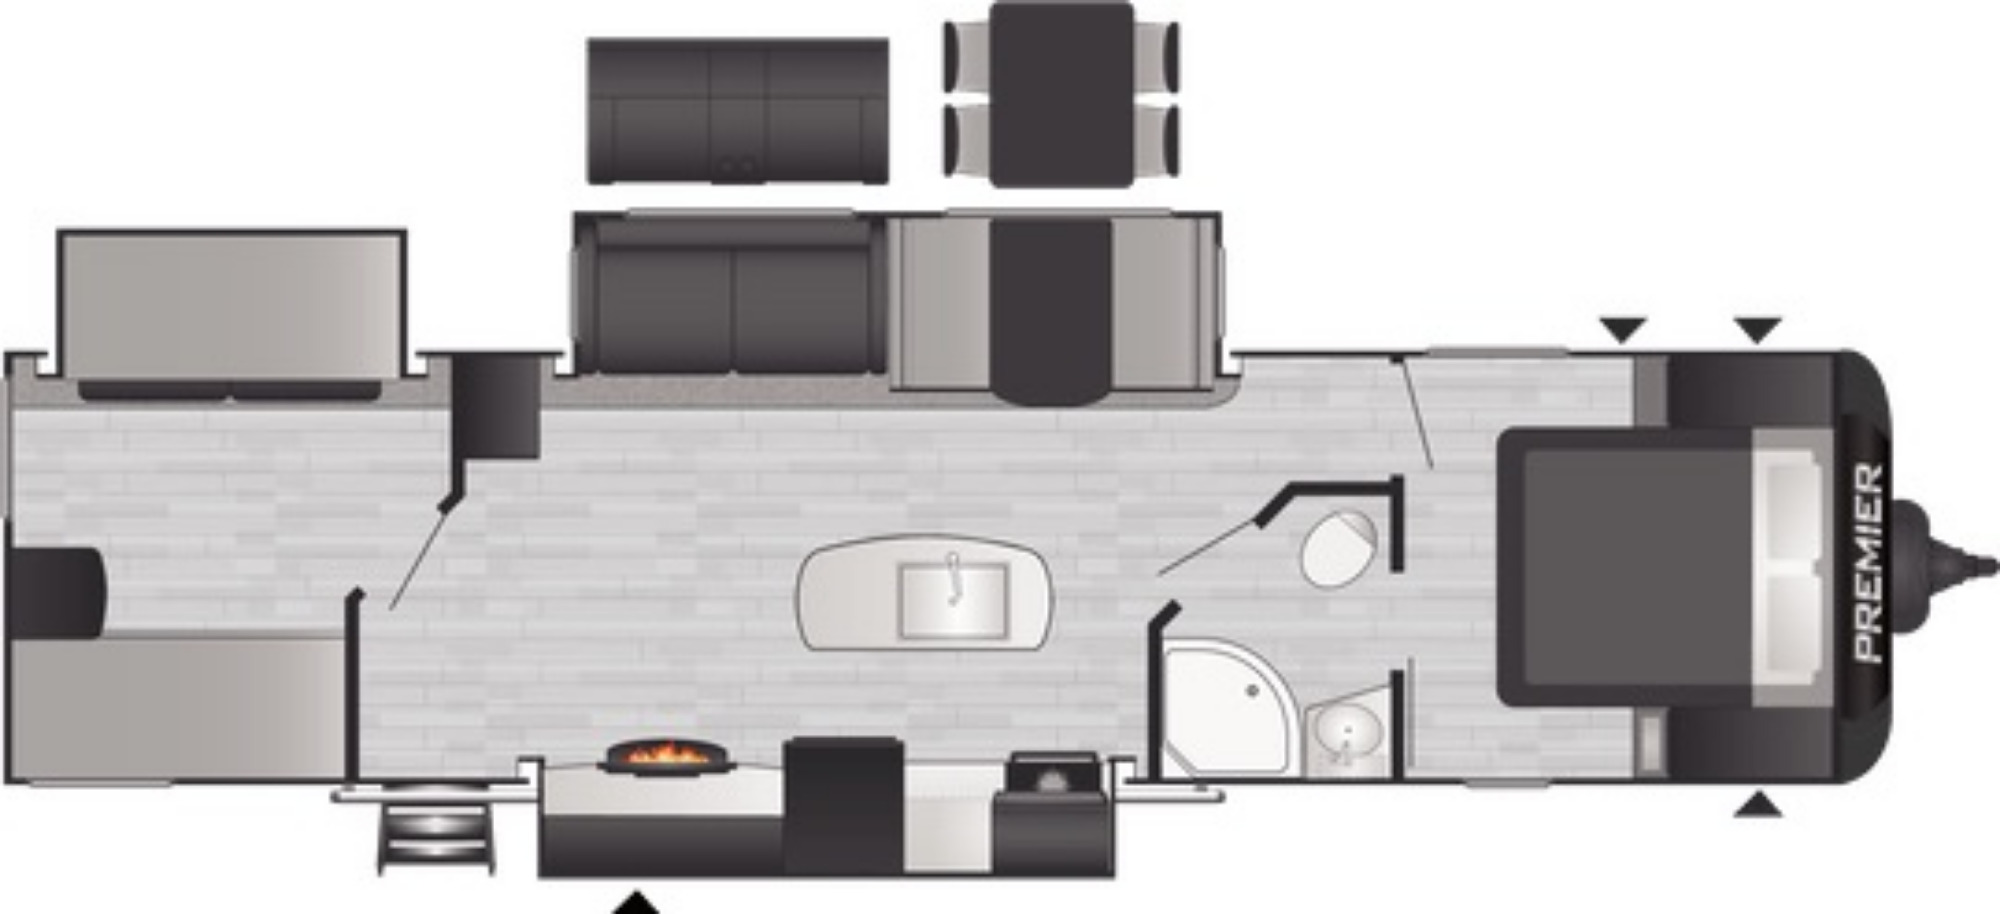 View Floor Plan for 2021 KEYSTONE PREMIER 34BI